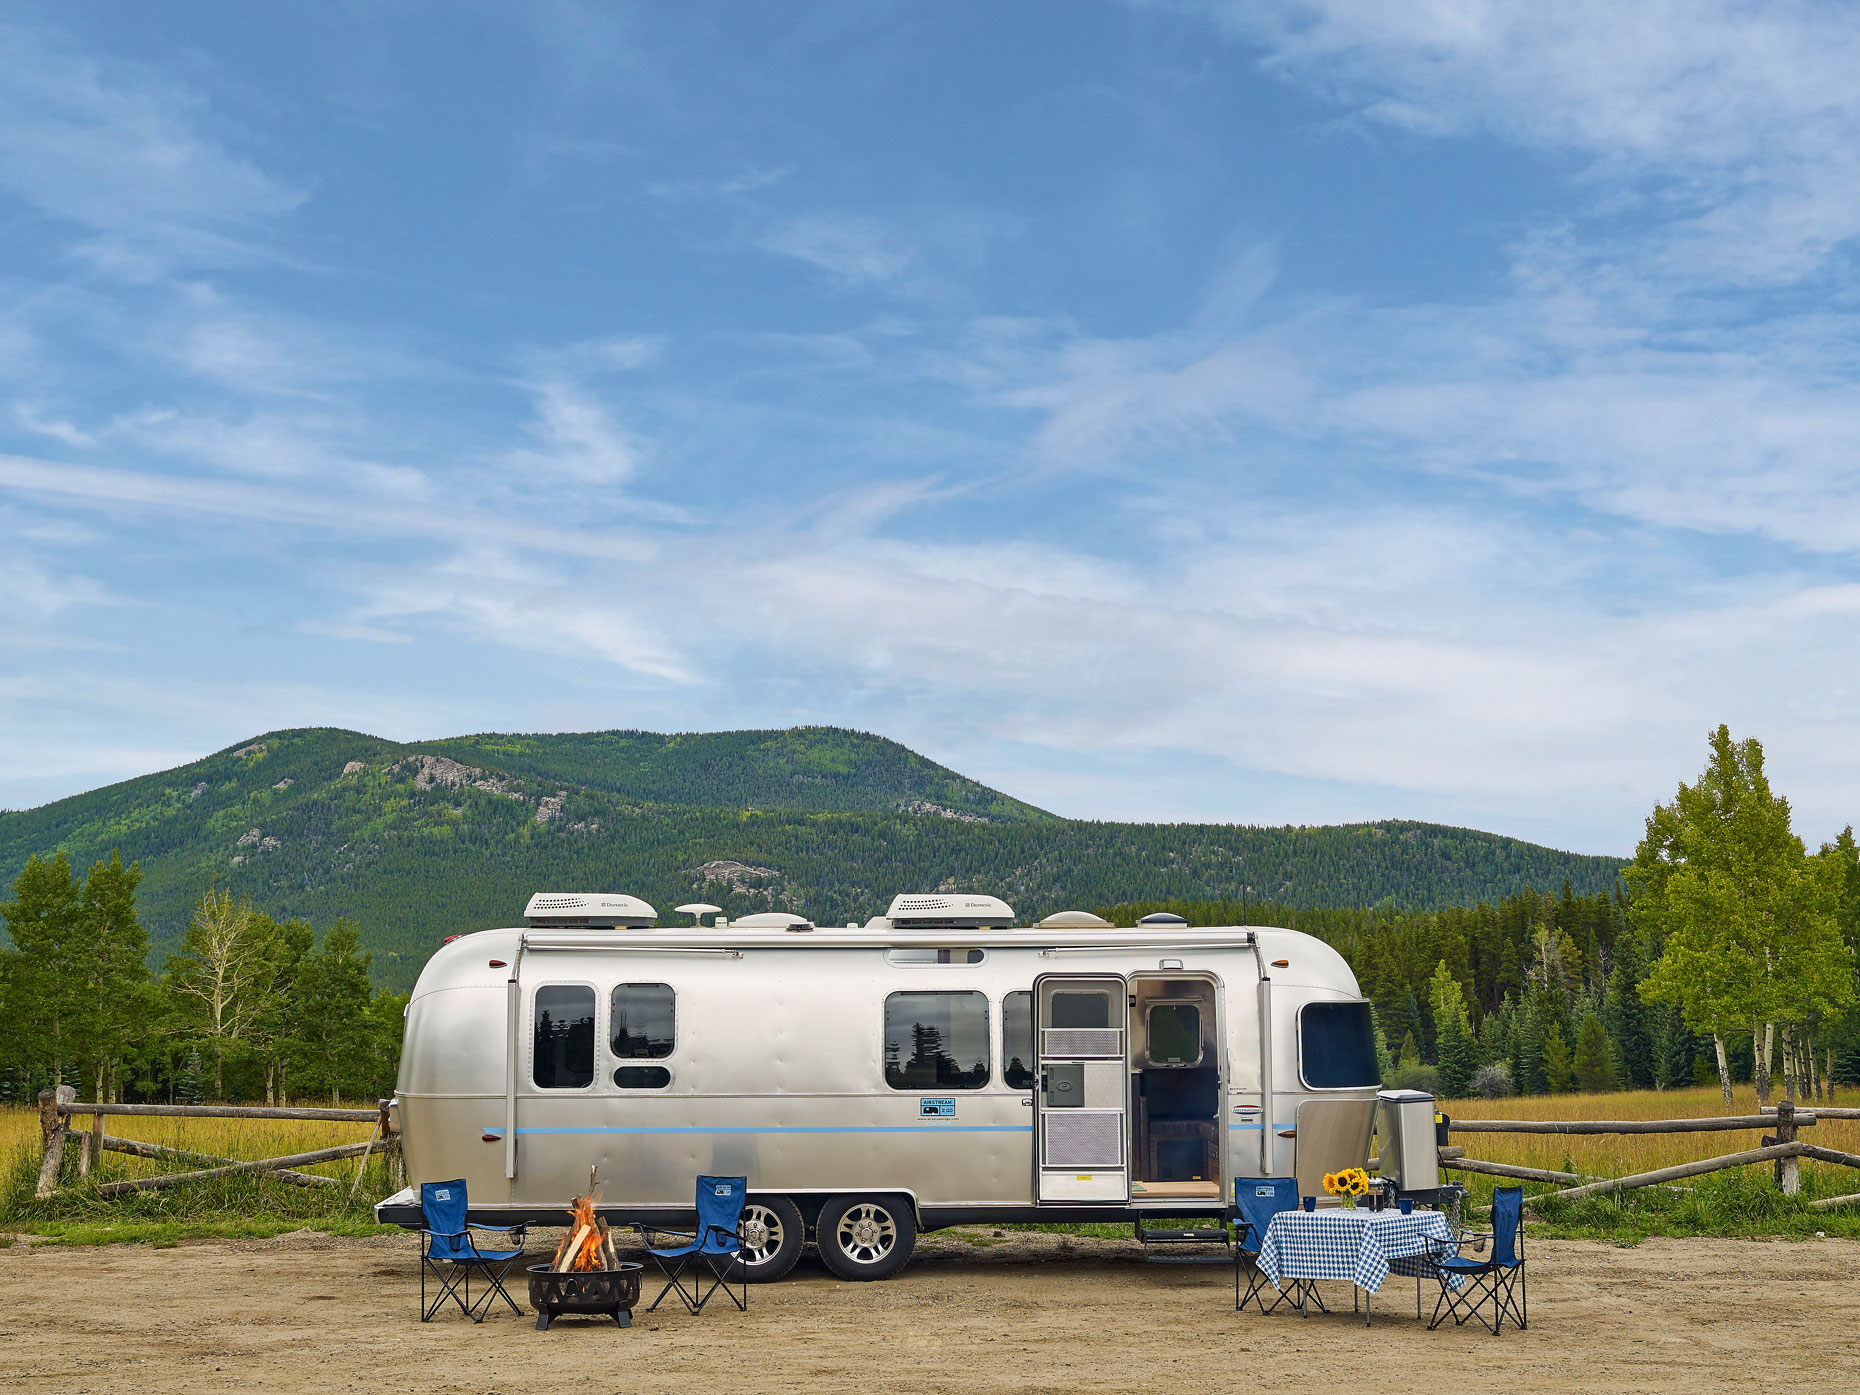 ER-Airstream-field-1_hr